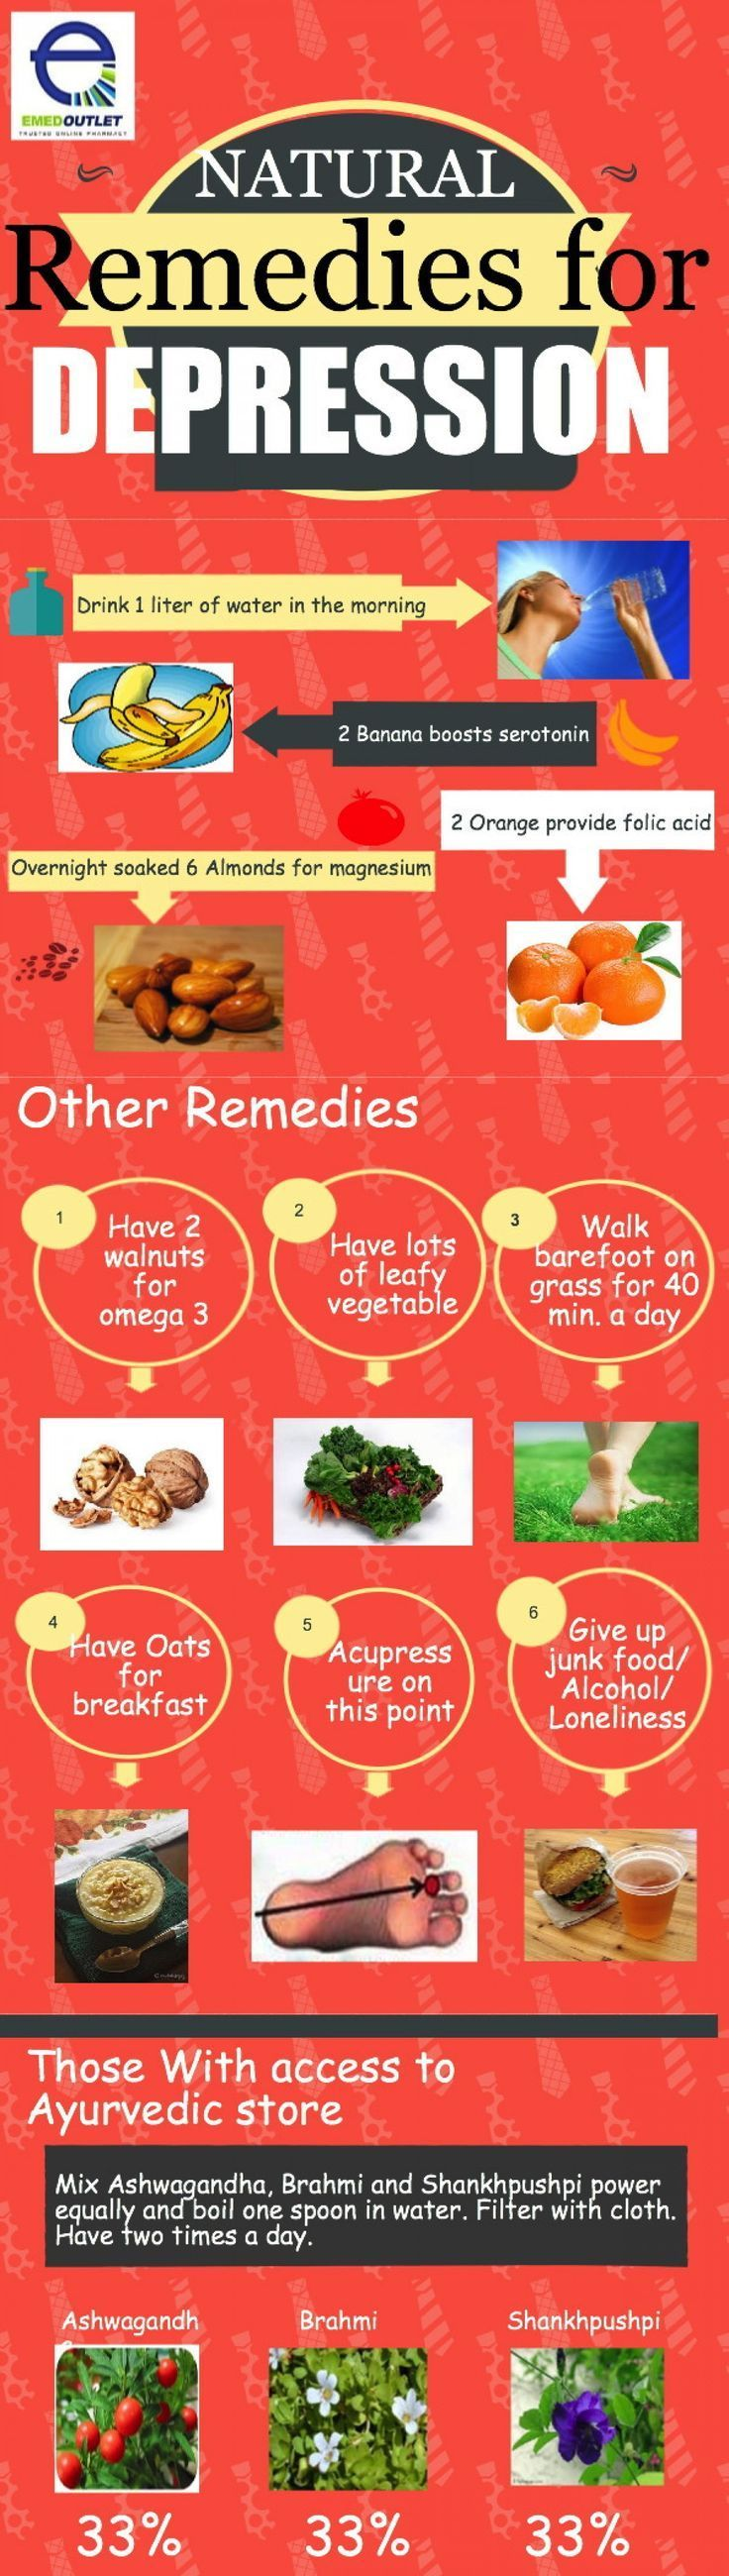 Natural Remedies For Depression --shared by markturner415 on Aug 02, 2014 - See more at: http://visual.ly...  